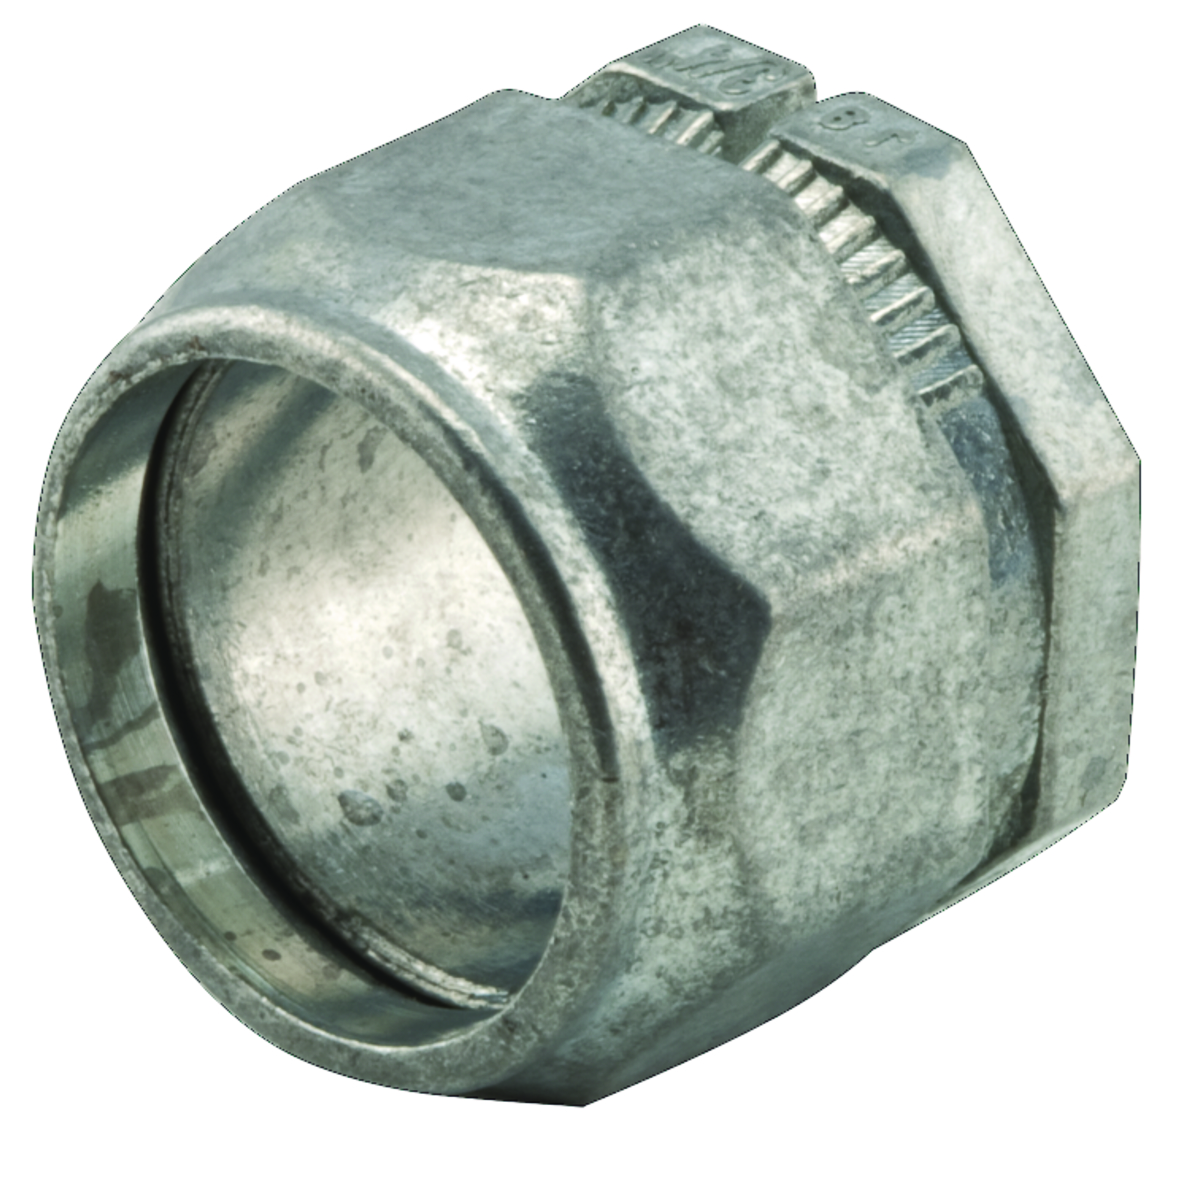 CONNECTOR EMT 2PC 1/2 IN DIE CAST ZINC